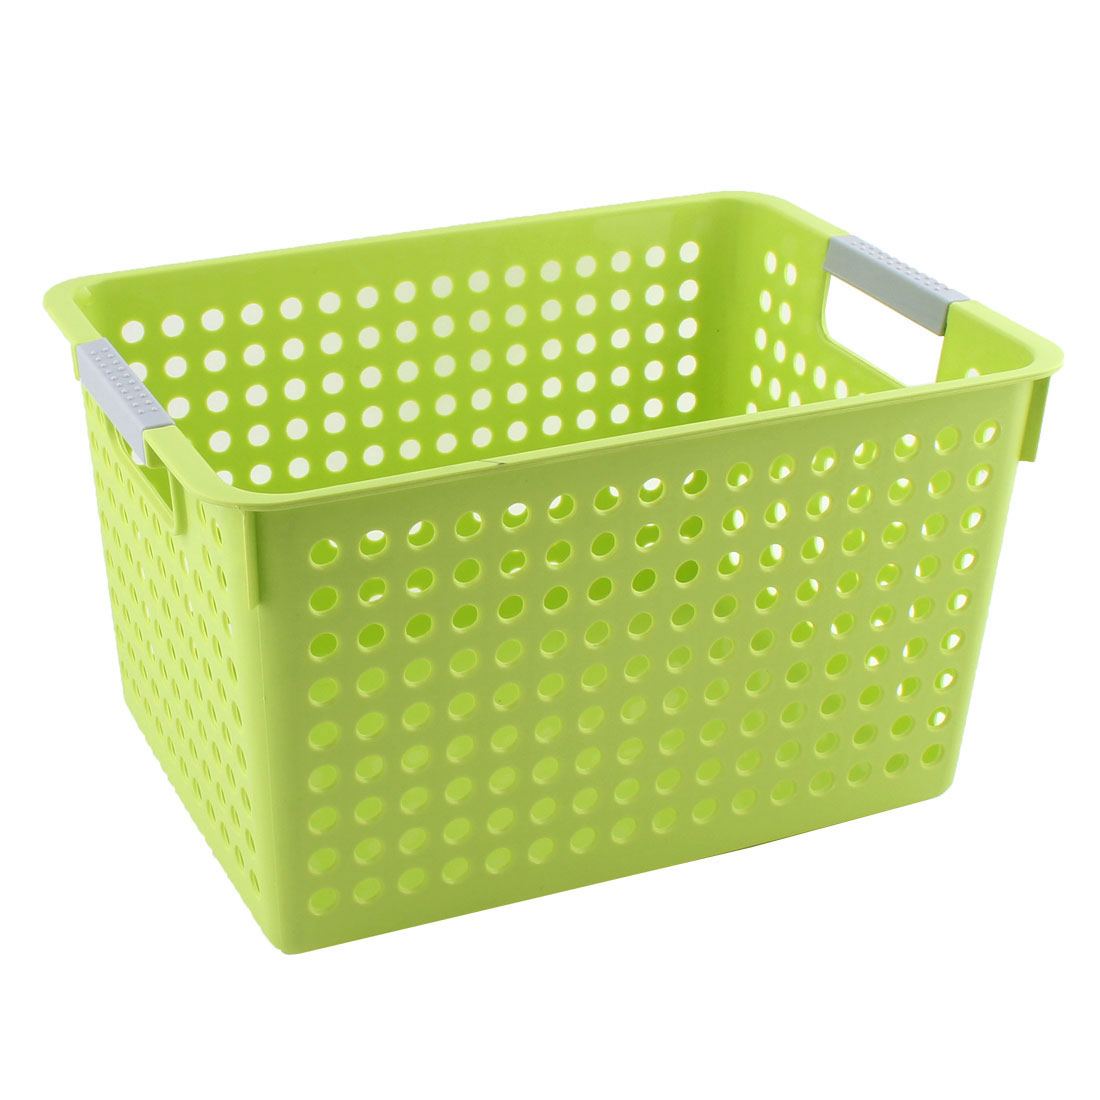 Household Bathroom Plastic Hollow Out Design Storage Basket Organizer Green